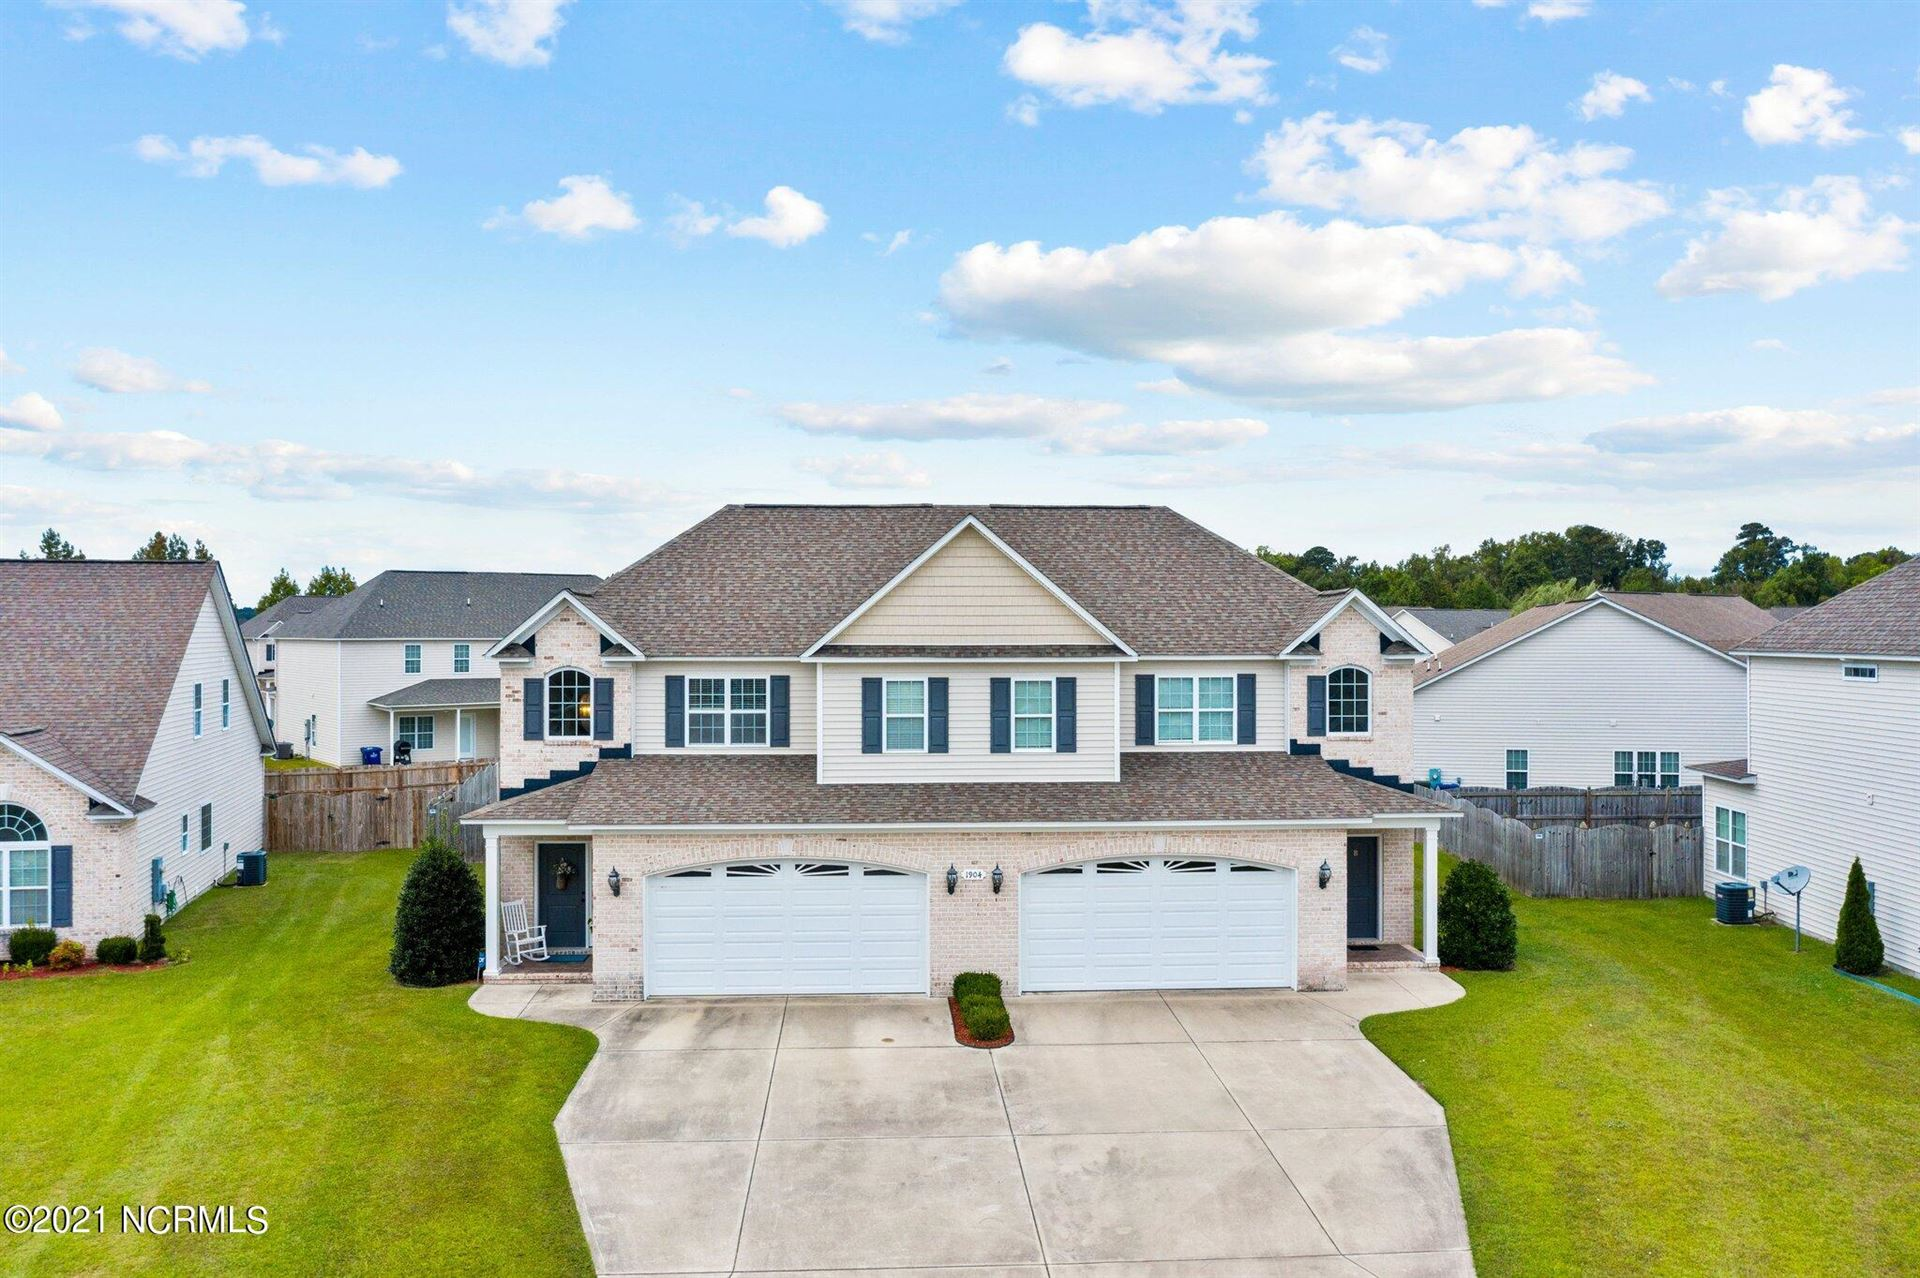 Photo of 1904 Leighton Drive #A, Greenville, NC 27834 (MLS # 100295485)